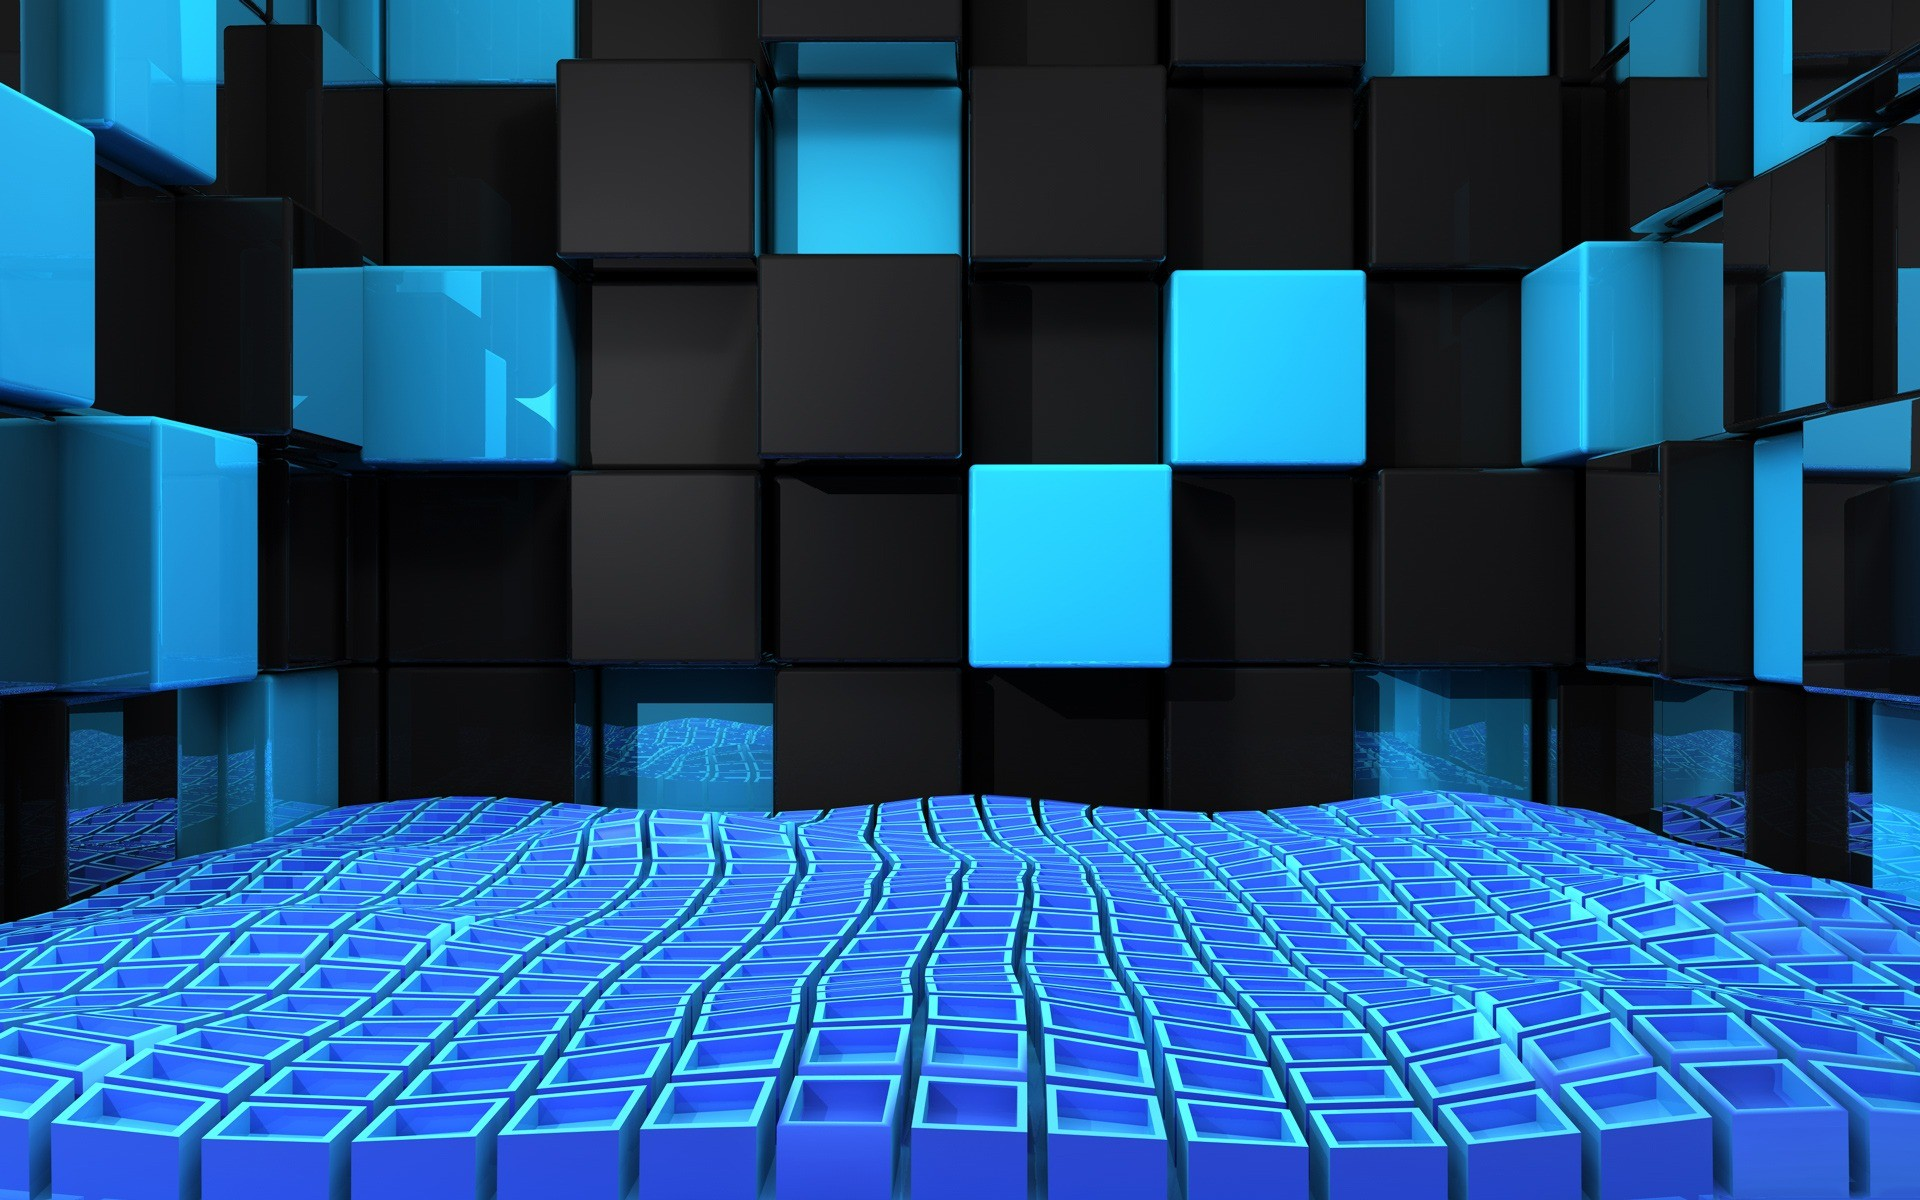 Cool 3D Backgrounds